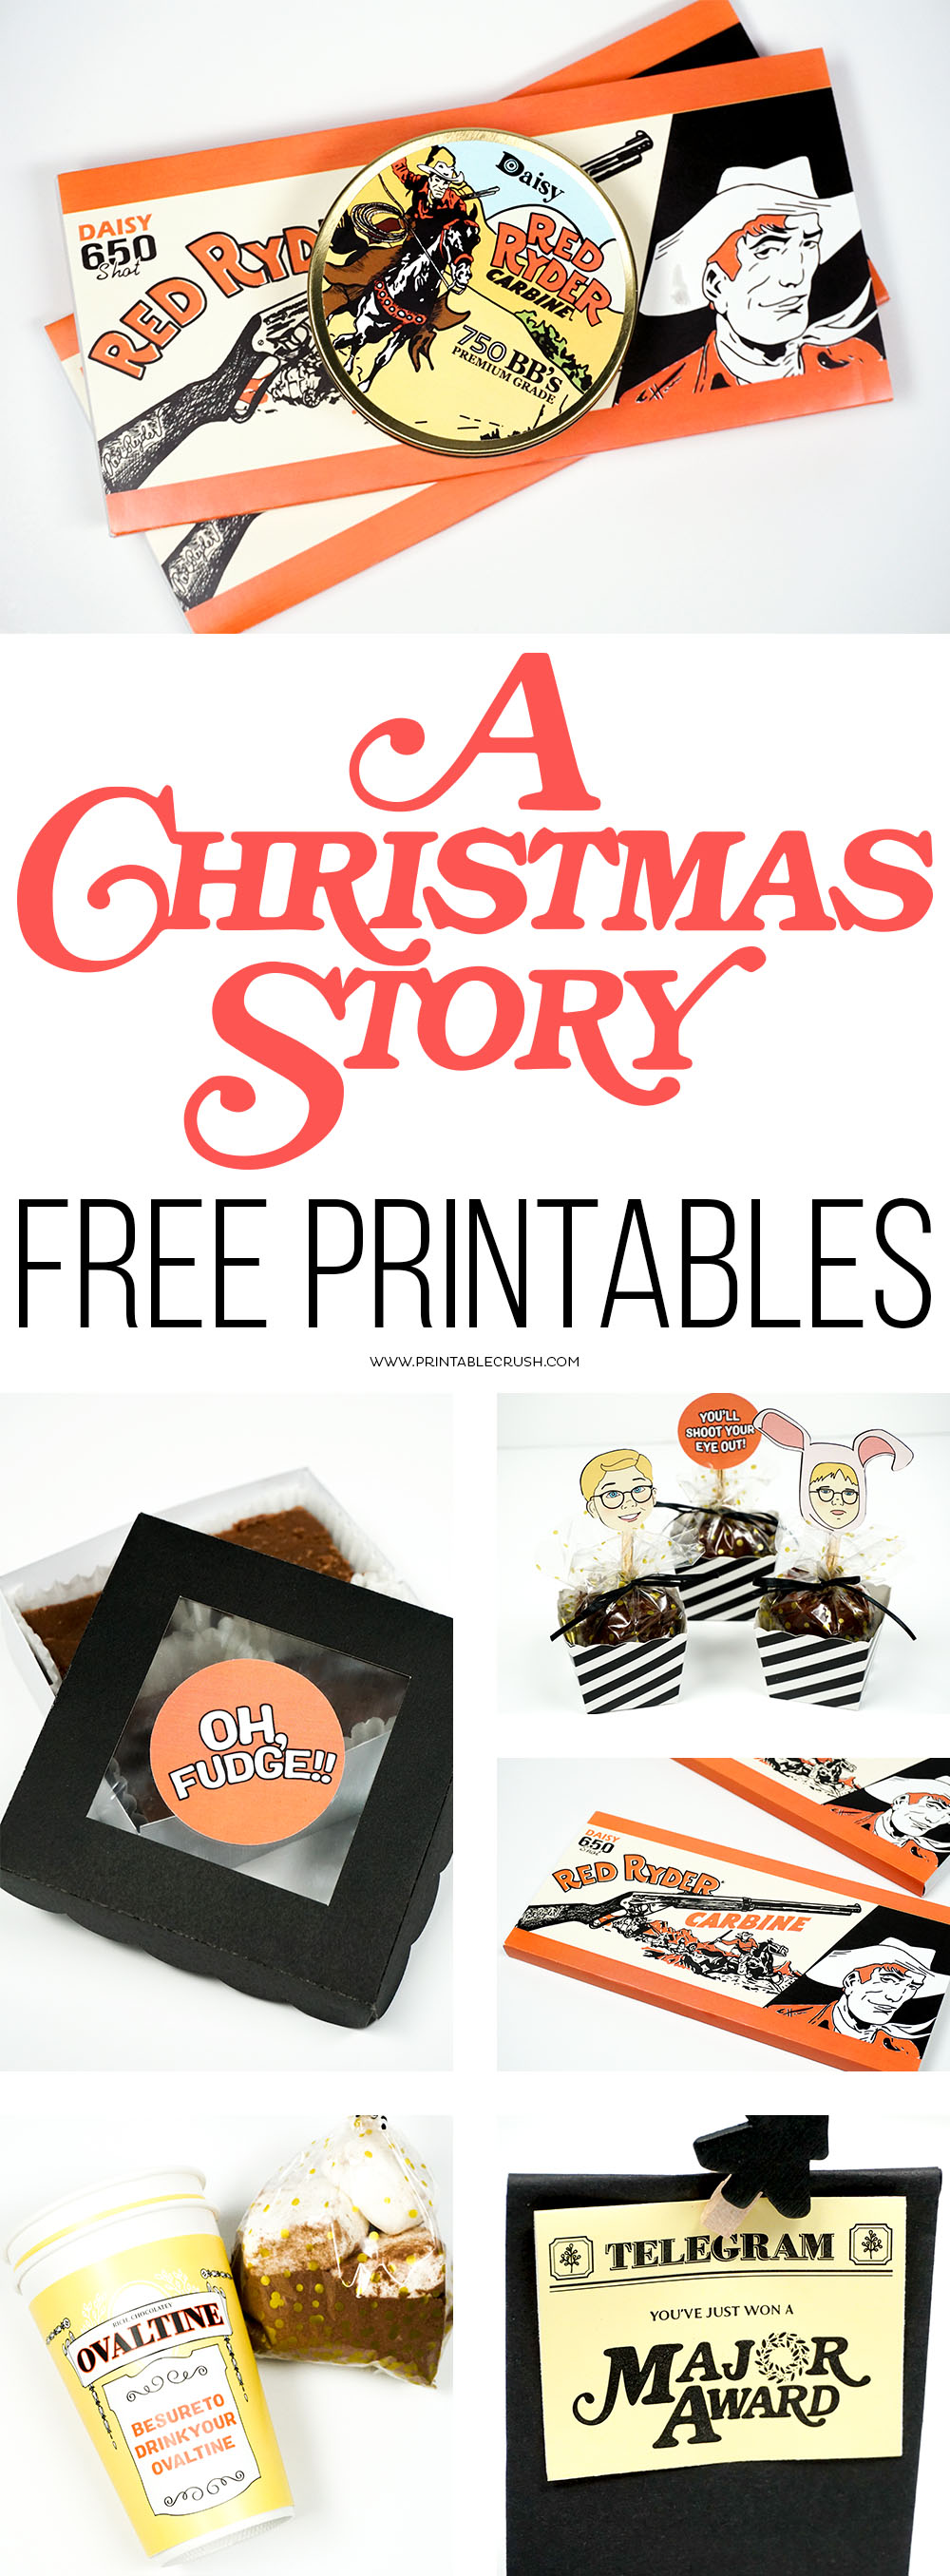 Download A Christmas Story FREE Printables to use at parties or for creative Christmas gifts. Includes 8 designs, from candy wrappers, to gift labels! #aChristmasStory #Freeprintables #Christmasgiftideas